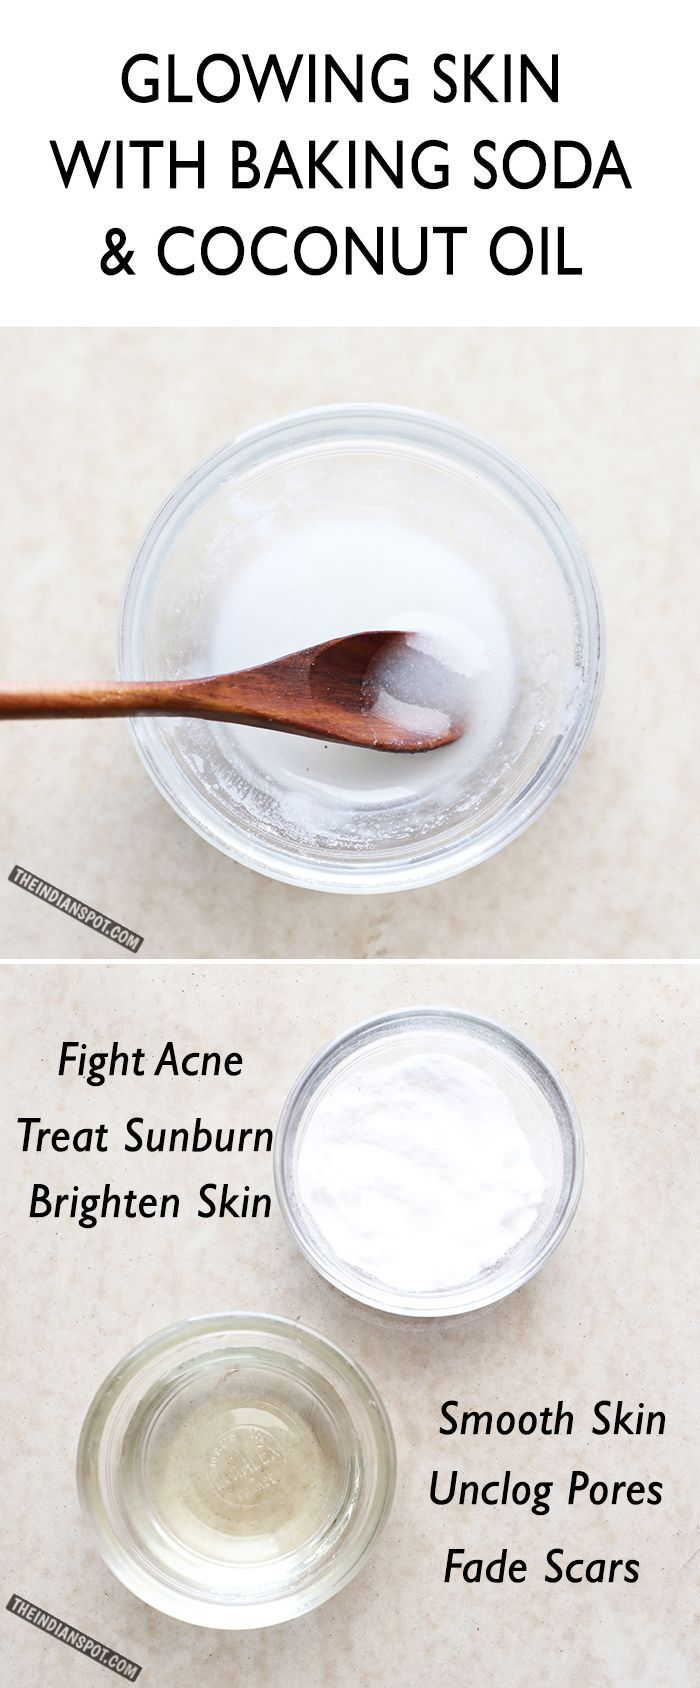 DIY face/body scrub along with its benefits: RECIPE: ½ cup coconut oil 2/3 cup baking soda 5 drops essential oils ( optional ) Method- Take coconut oil in a medium sized bowl. Melt it a bit if solid. Add baking soda slowly and stir until it forms uniformly white in color. Finally, add essential oil and stir again. To use, take about a teaspoon and scrub gently on face. This can be used as a body scrub too!